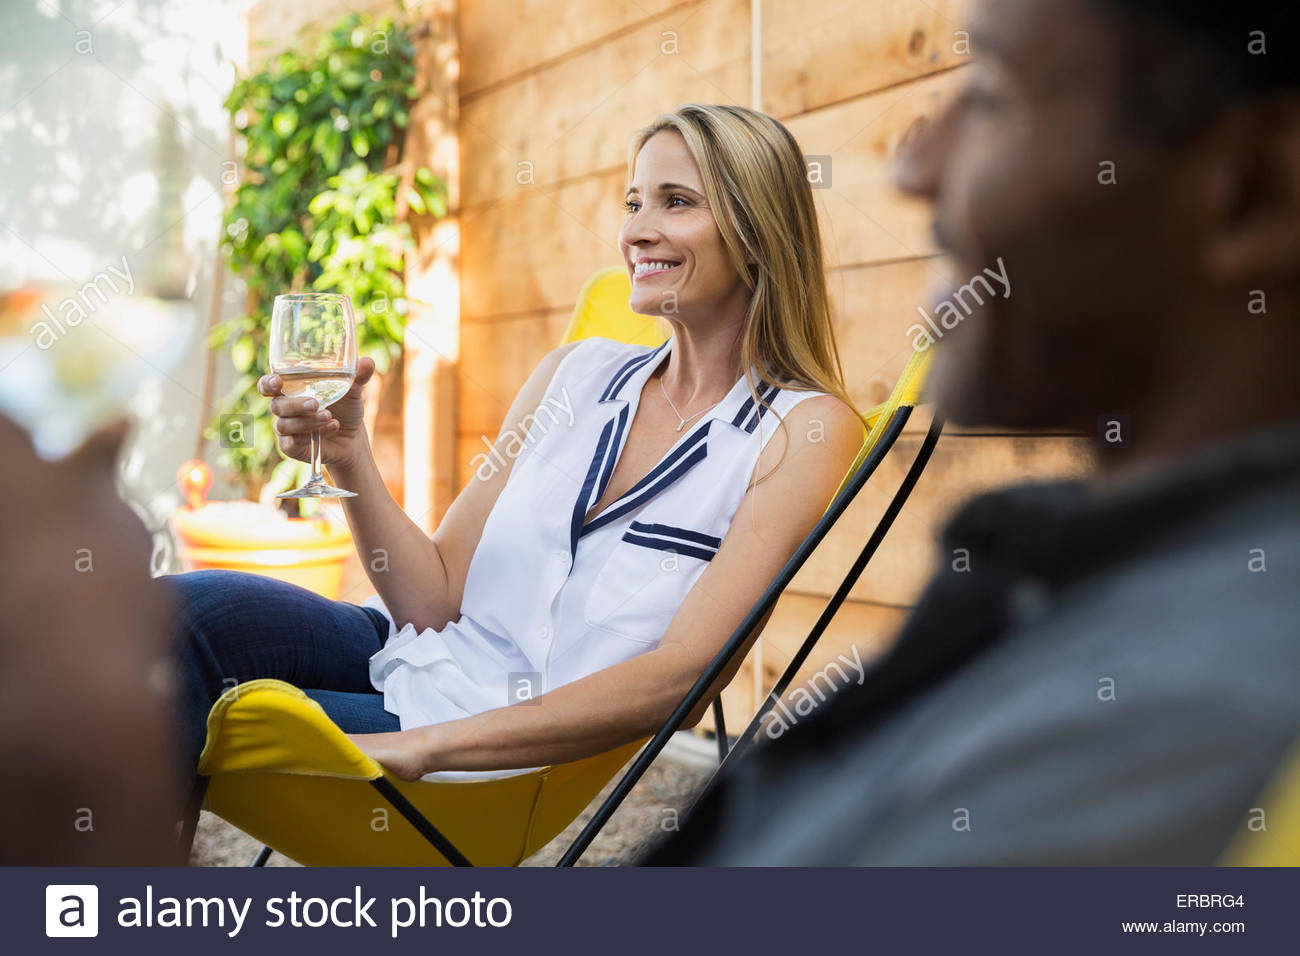 Smiling woman drinking wine on patio - Stock Image